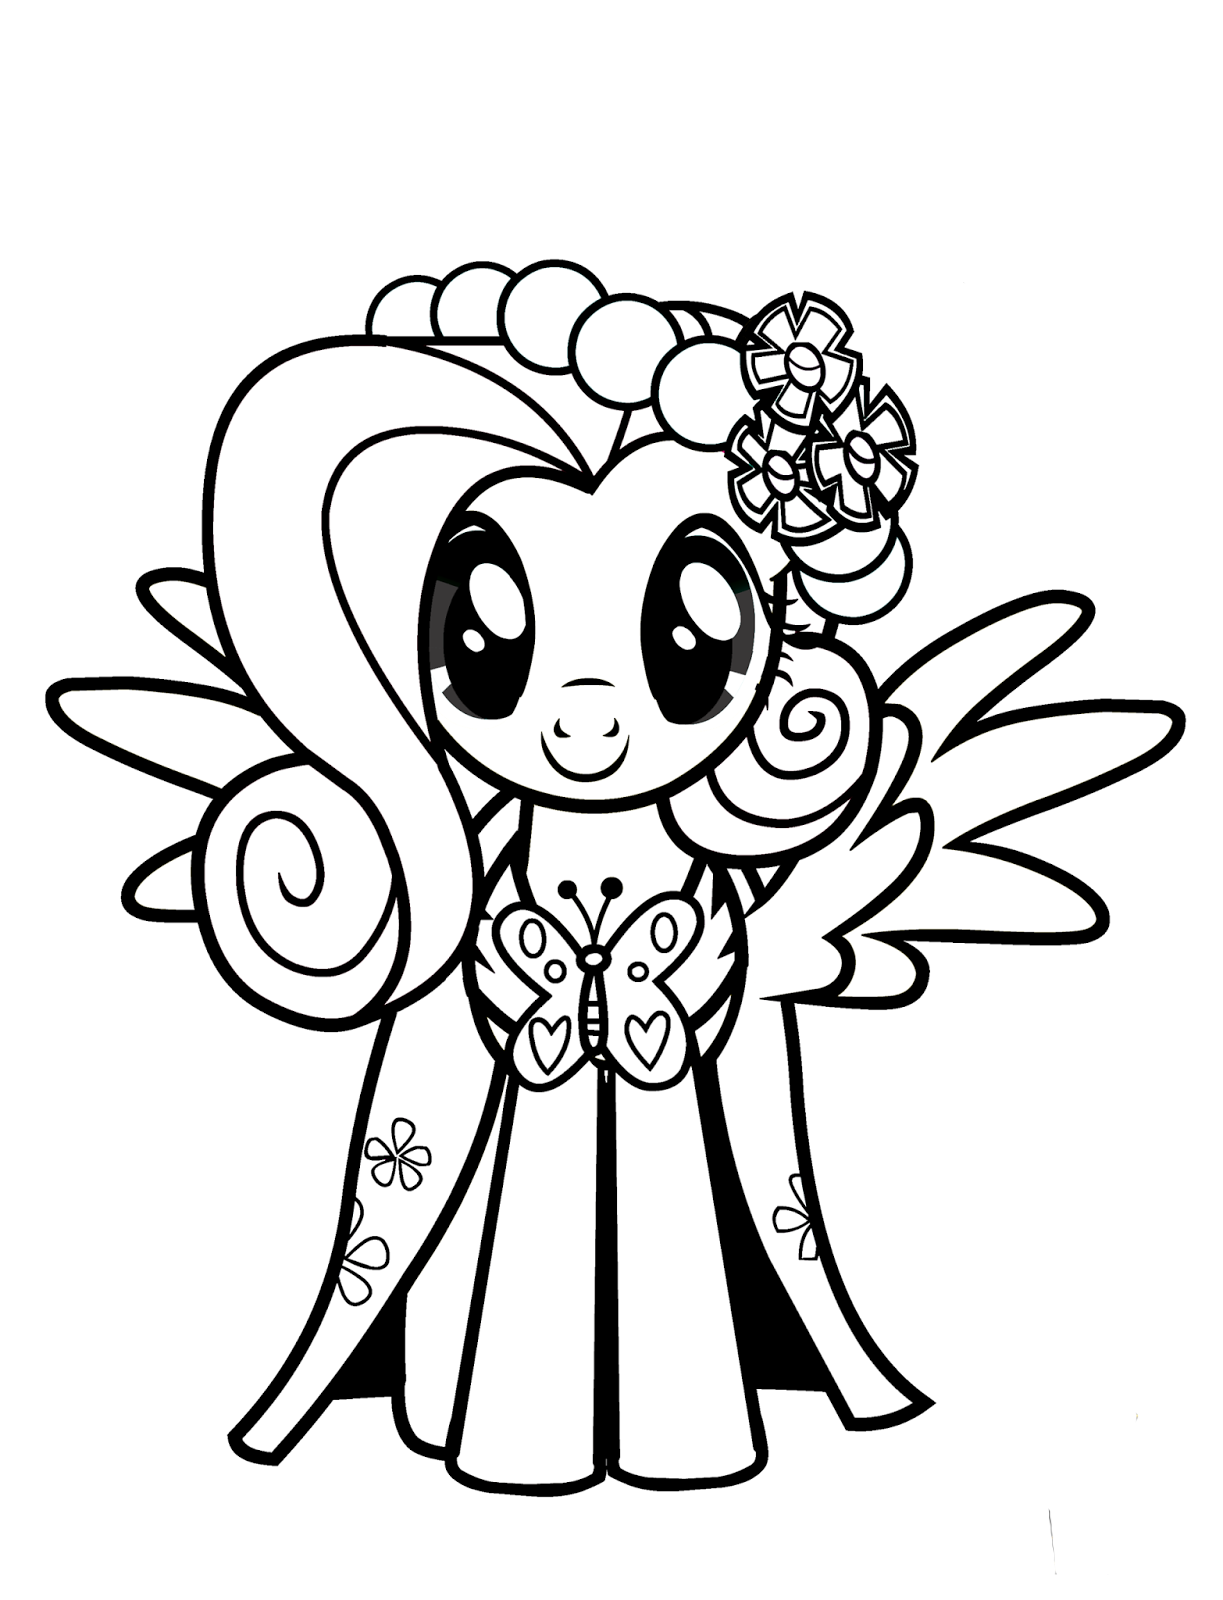 Fluttershy coloring pages best coloring pages for kids for Coloring book pages free